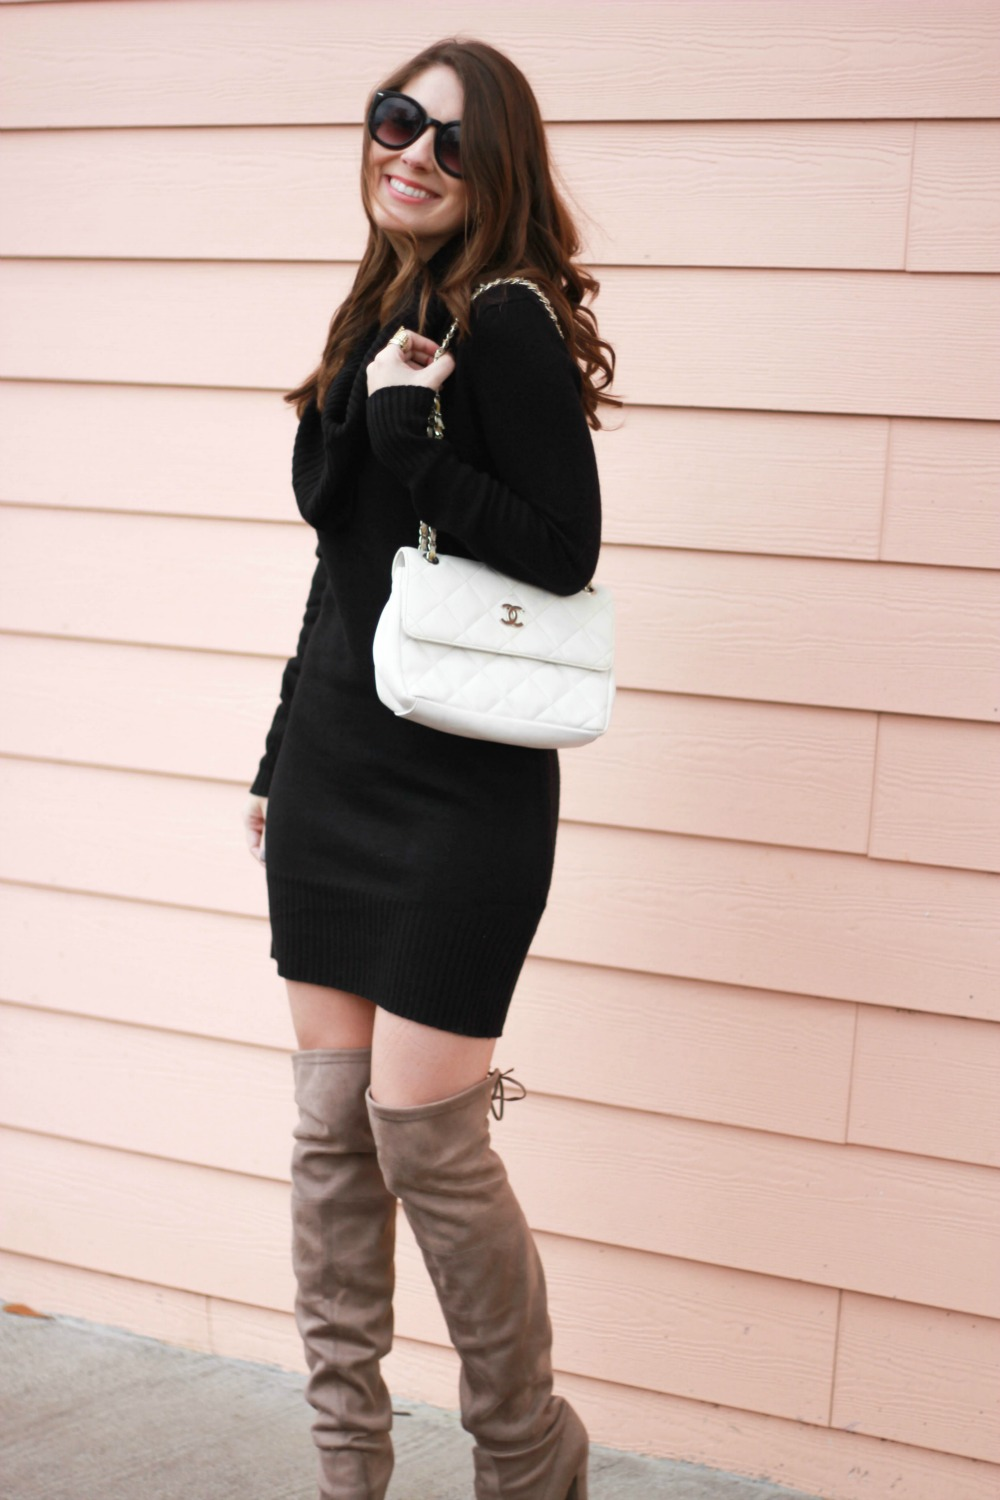 Sweater Dress - BNB styling